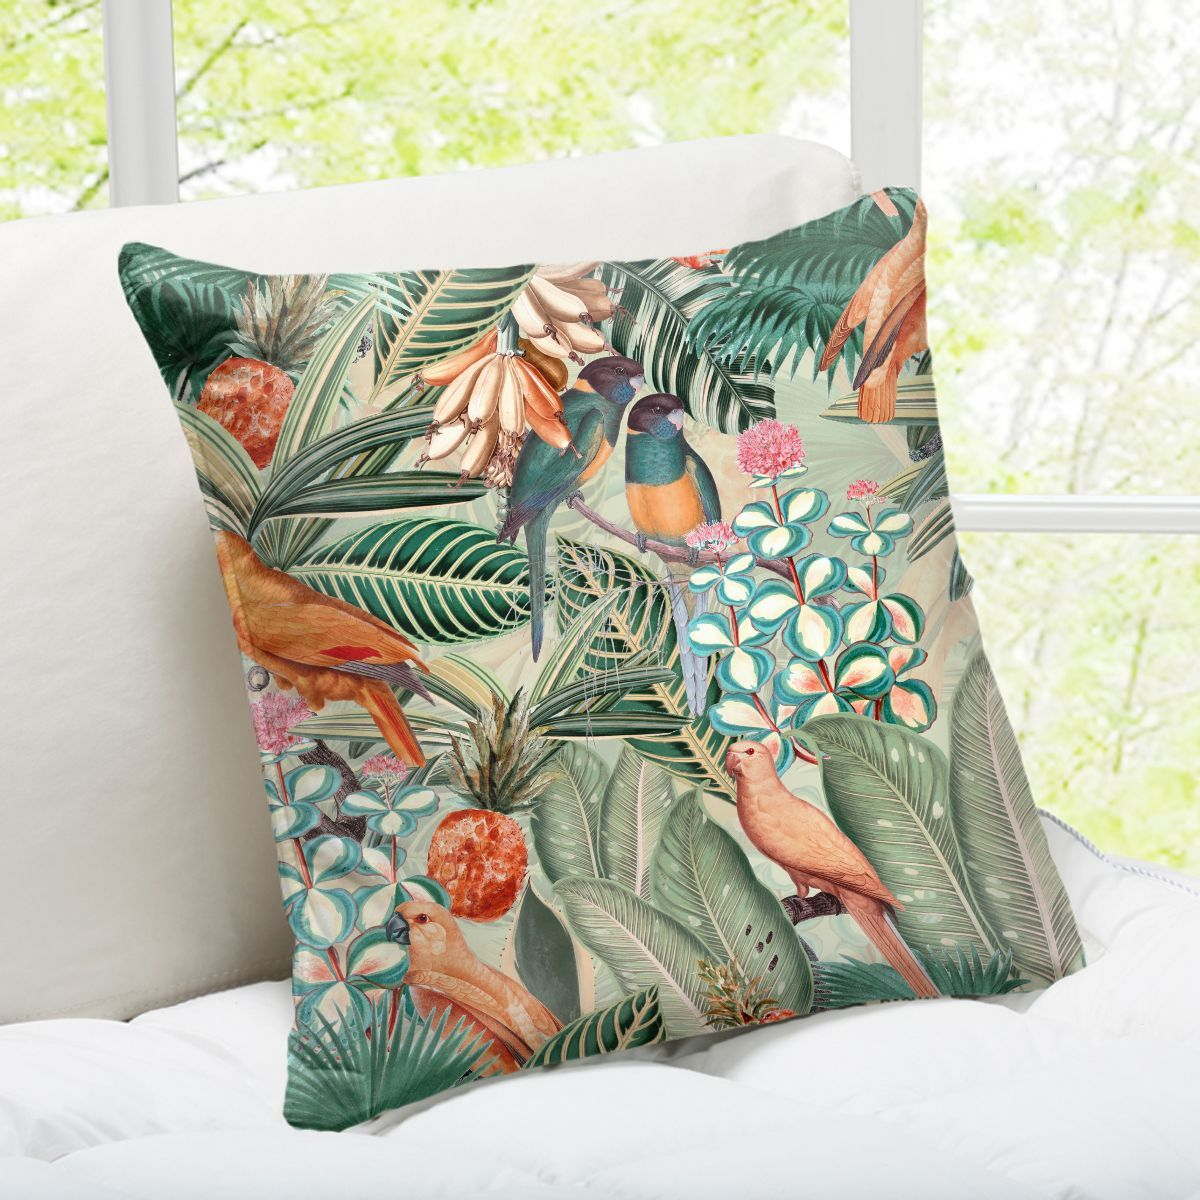 Designer cushions from UK